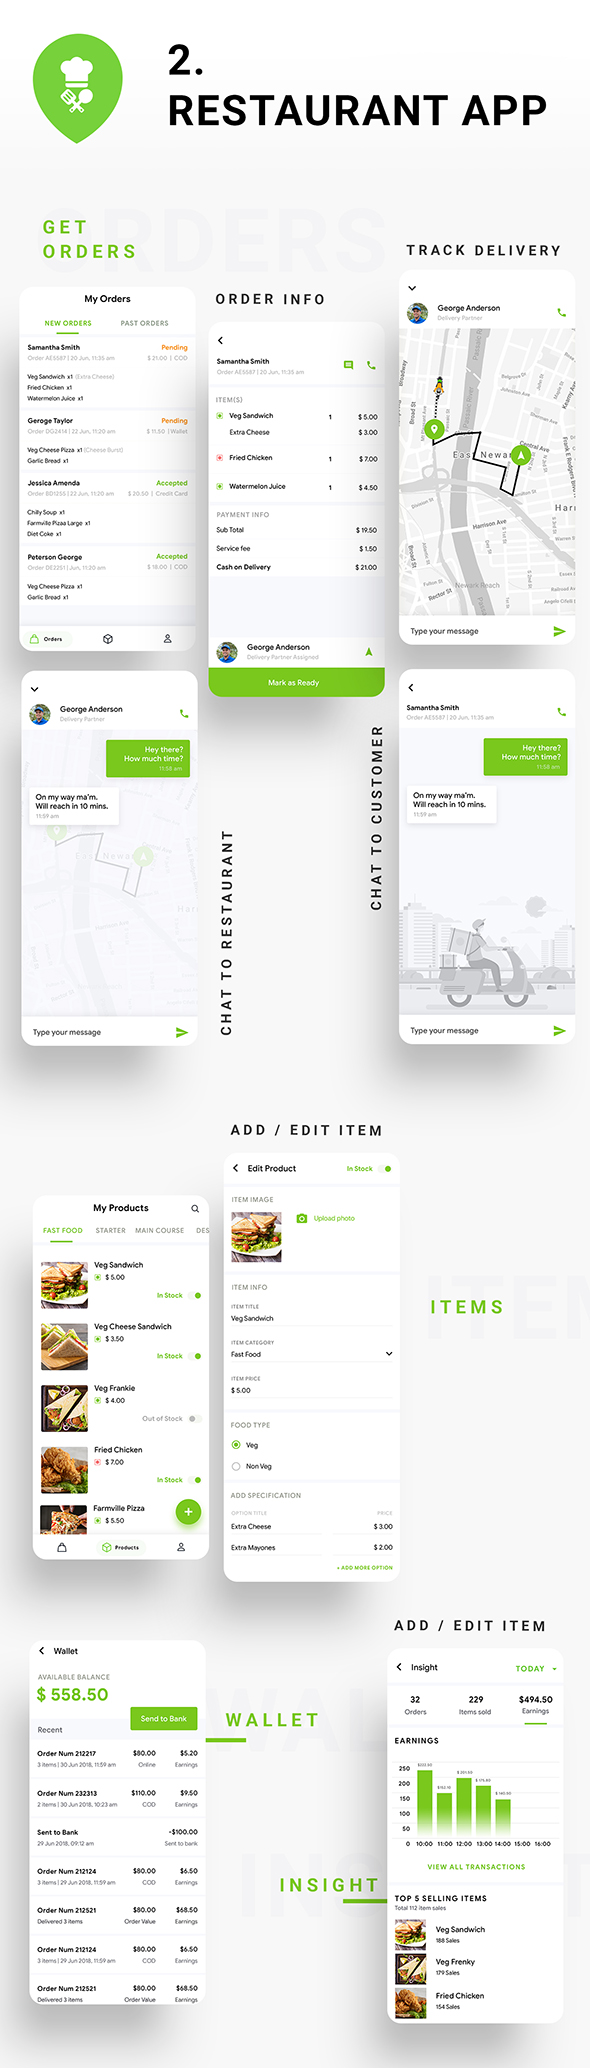 Multi Restaurant Food Ordering App | Food Delivery App | 3 Apps | Android + iOS App Template| IONIC - 3